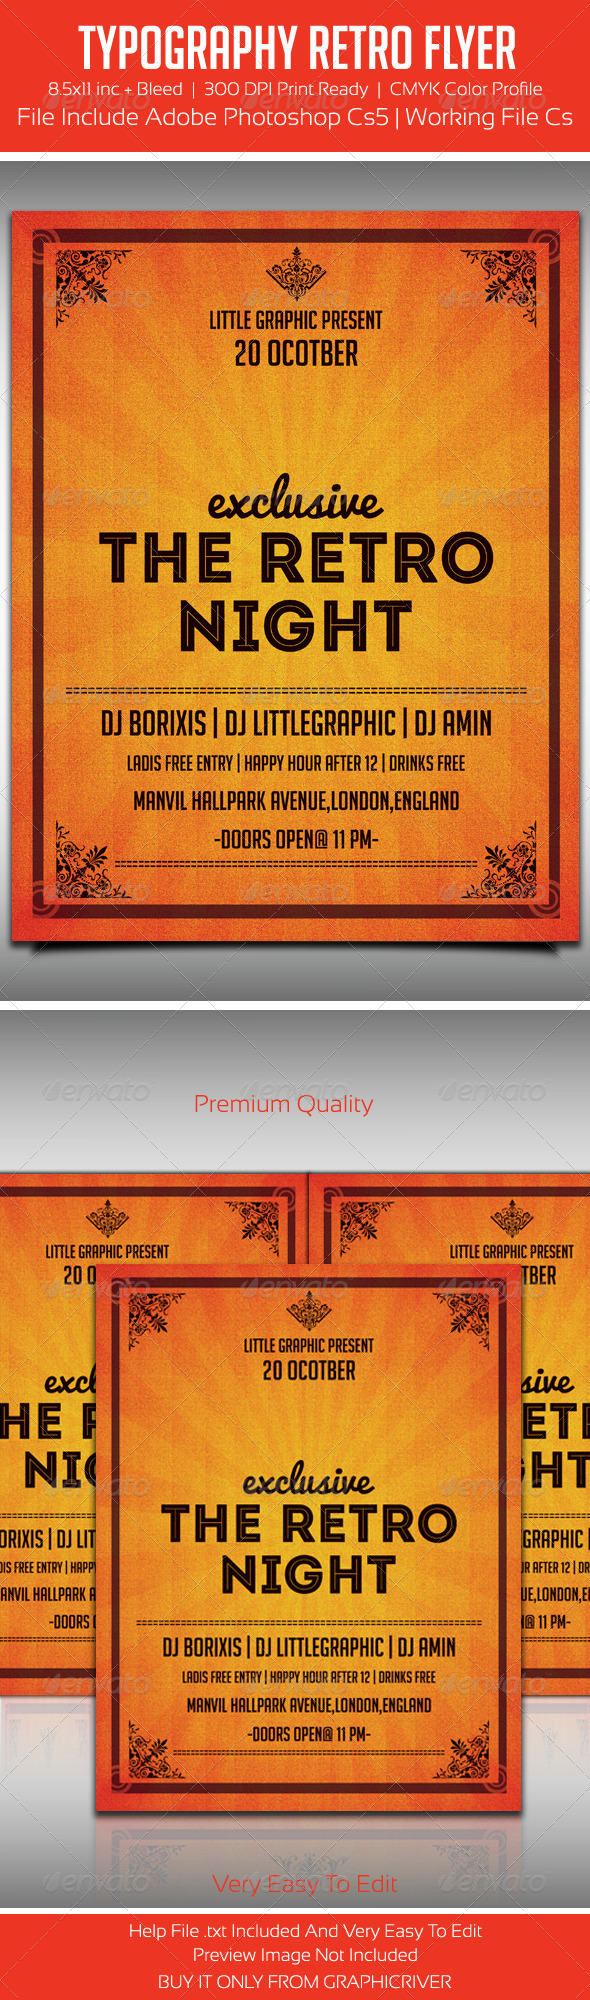 Typography Retro Party Flyer Template - Flyers Print Templates